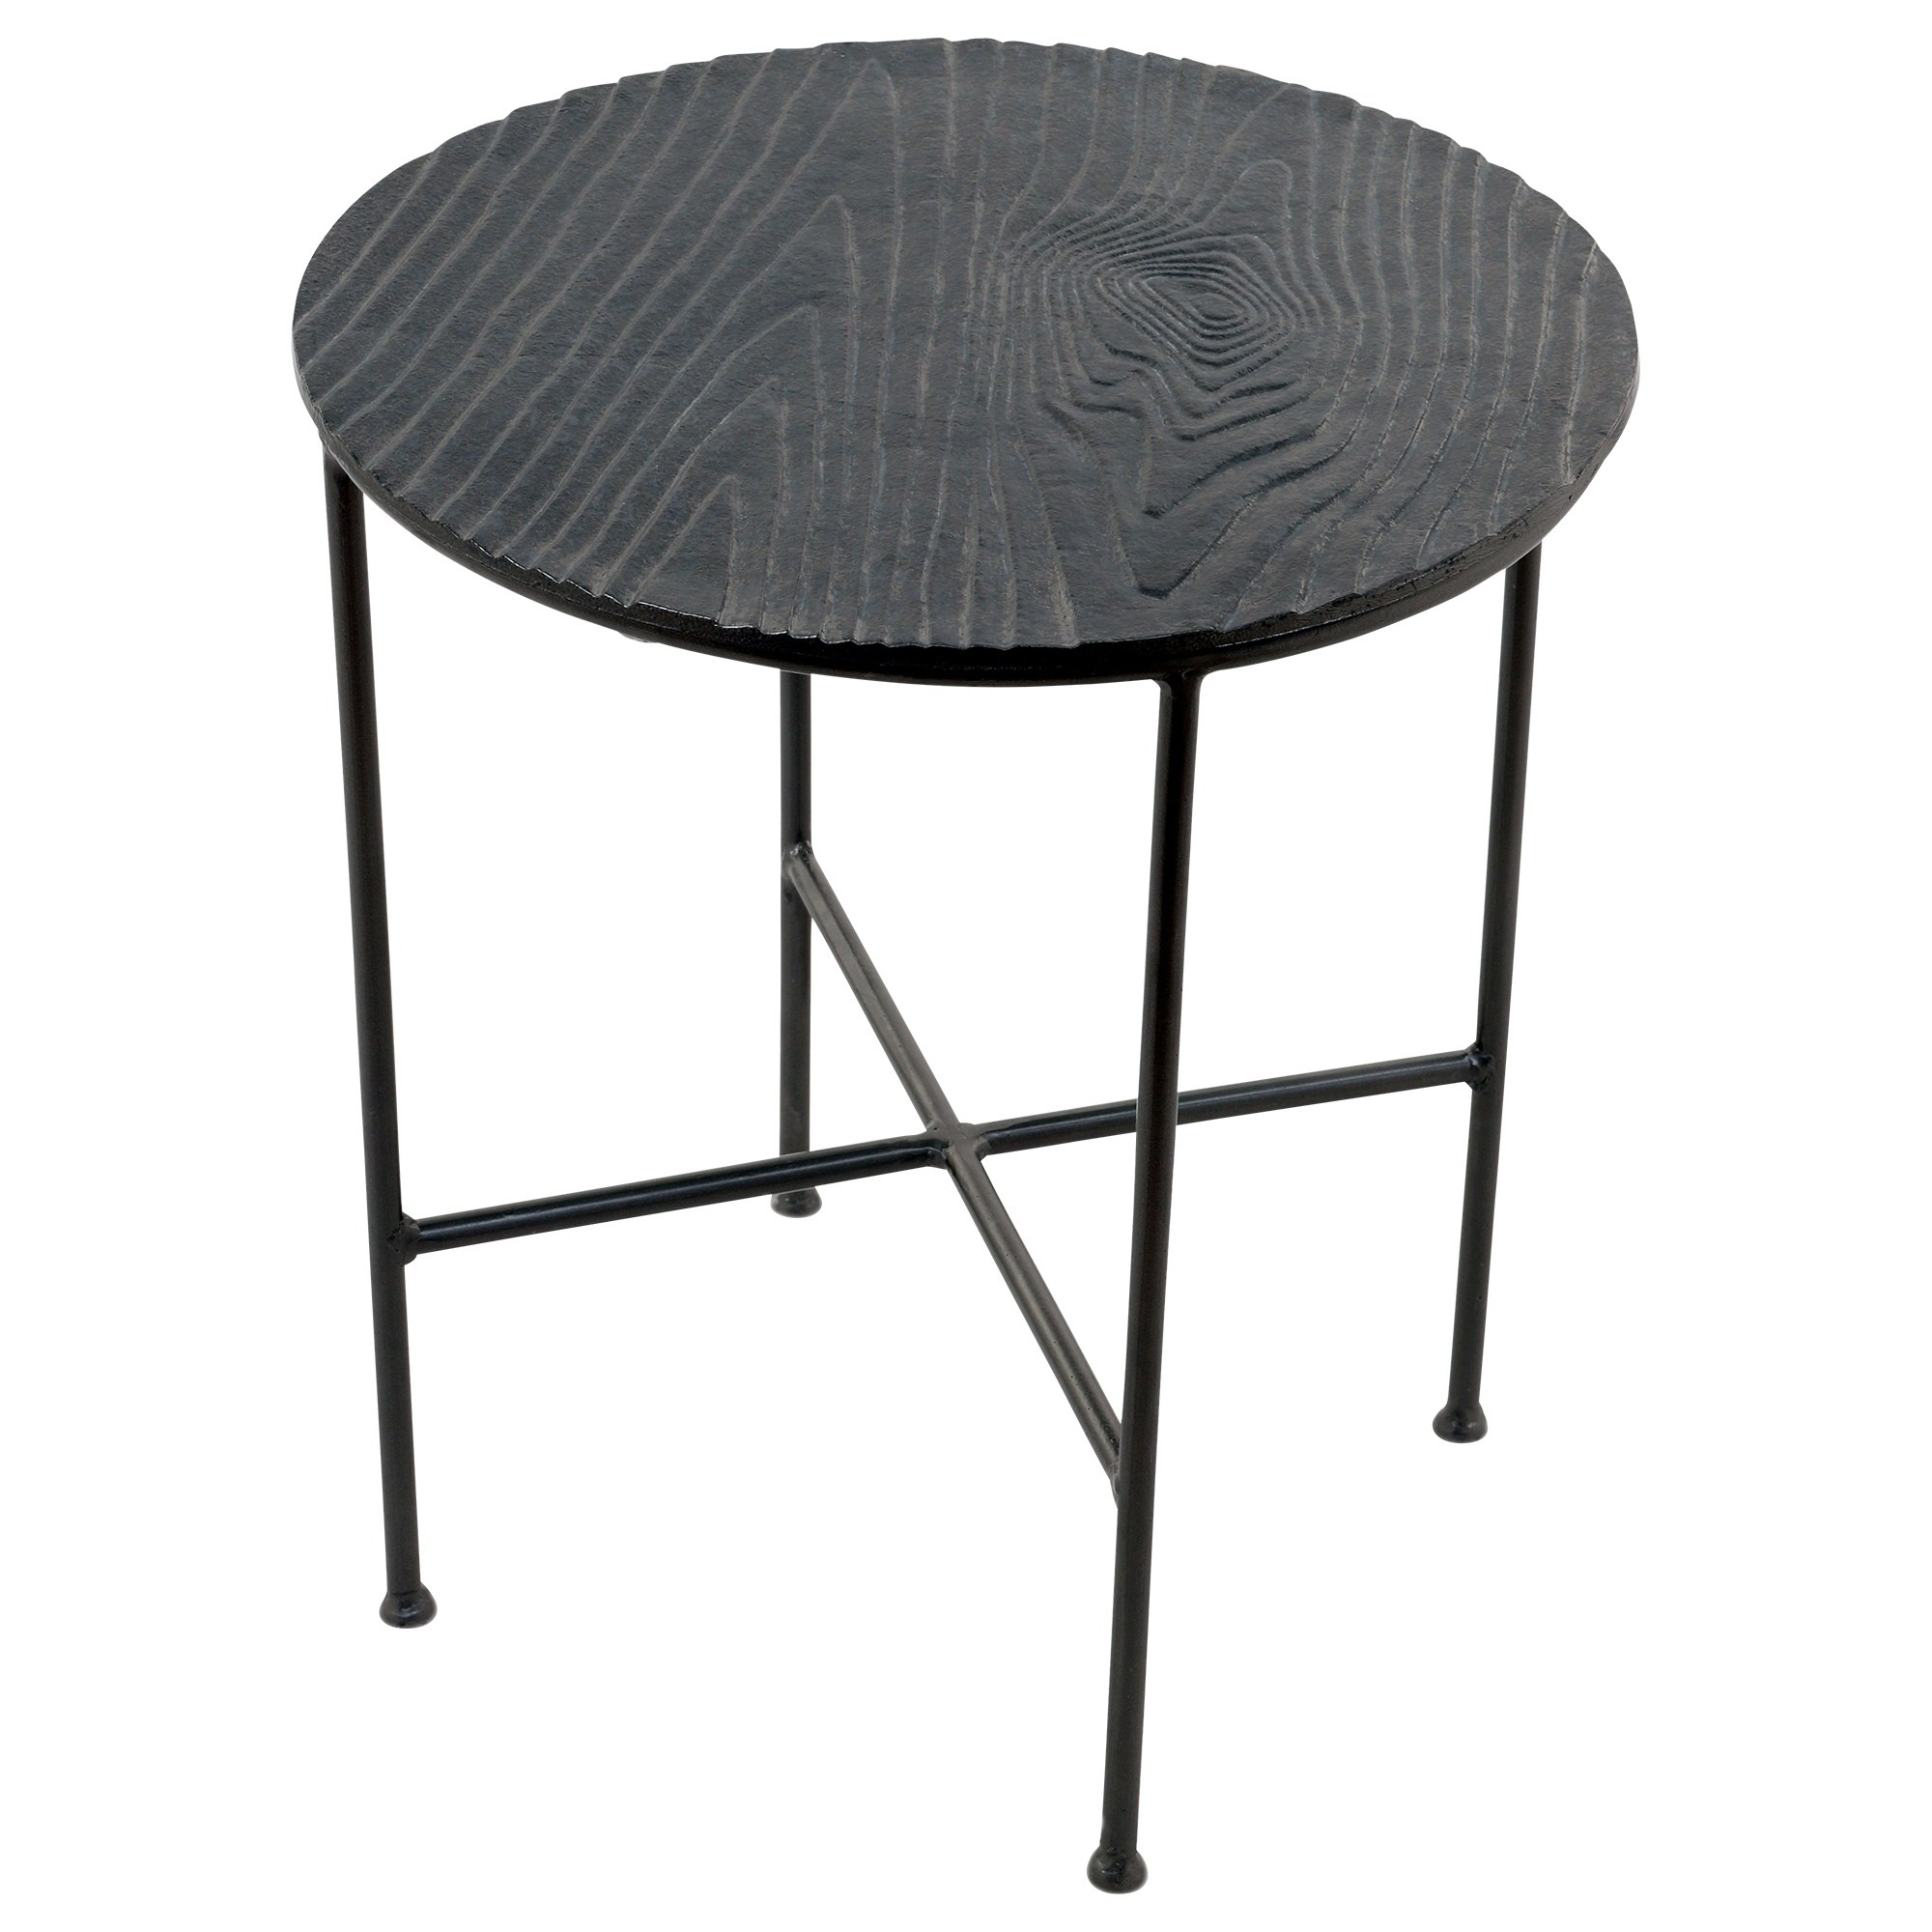 renwil bale grey aluminum round accent table free shipping safavieh janika off white today demilune clearance wicker outdoor furniture daybed metal stools target bedside tables